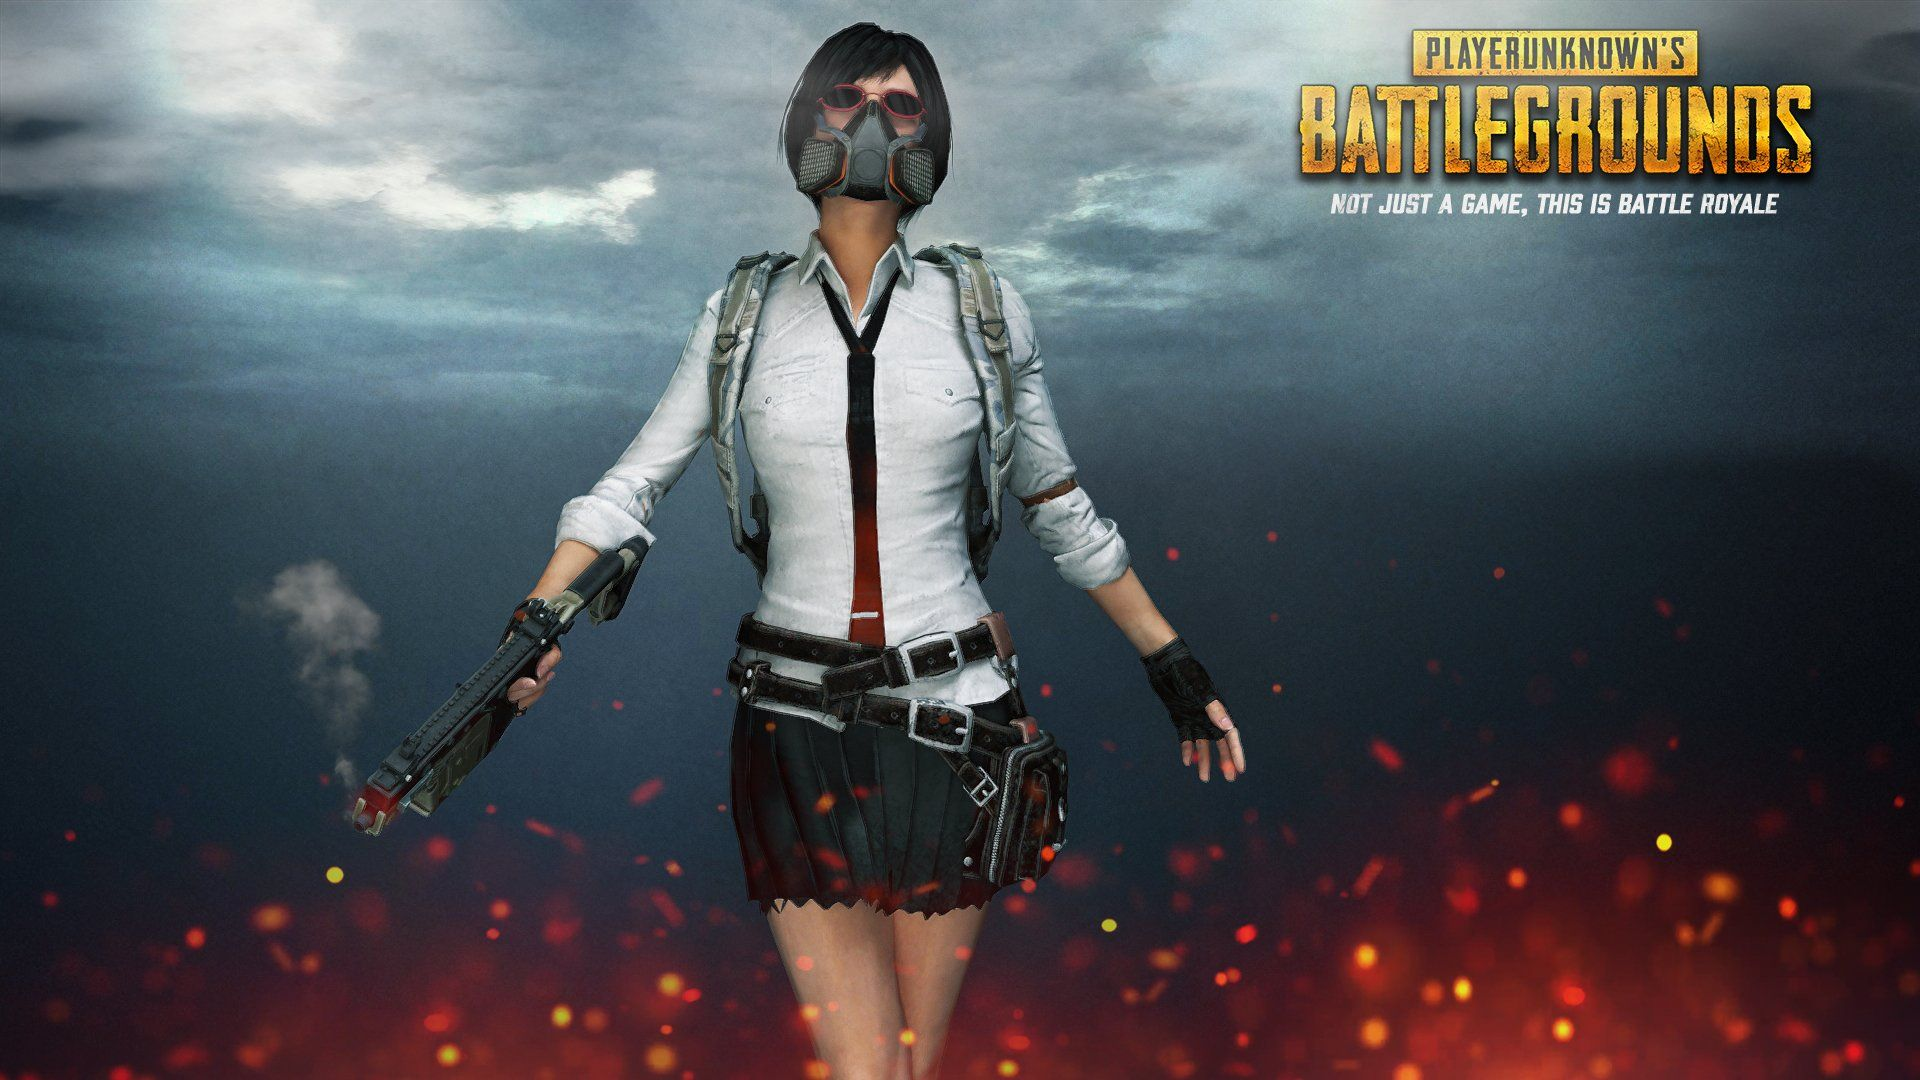 Video Game PlayerUnknown's Battlegrounds Wallpaper